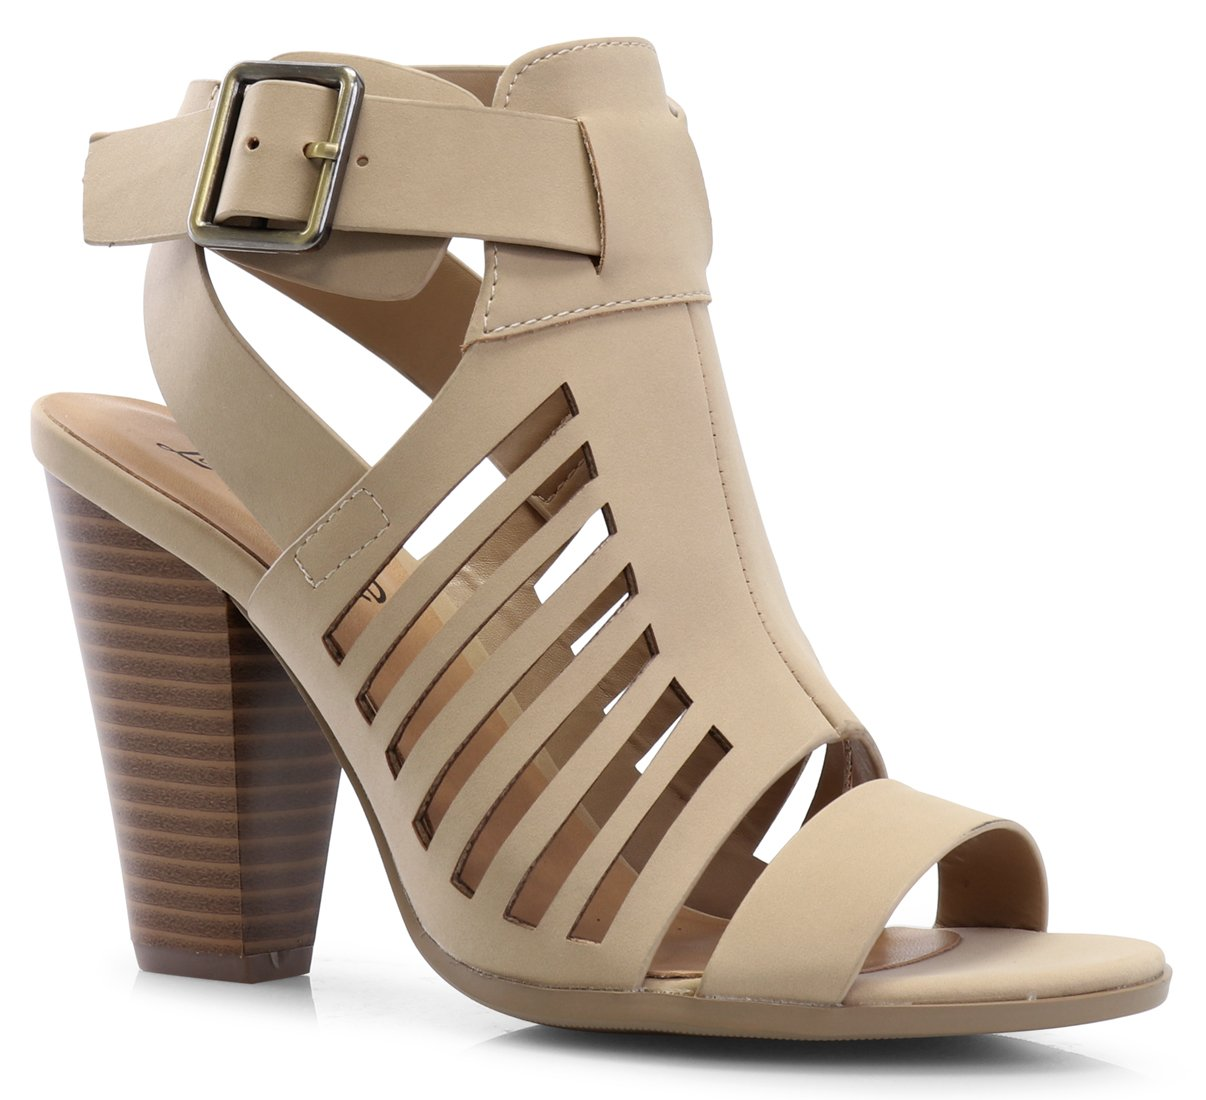 LUSTHAVE Women's Yvonne Laser Cut Sandal - Sexy Wood Stacked Heel - Strappy Open Toe Shoes Natural 8